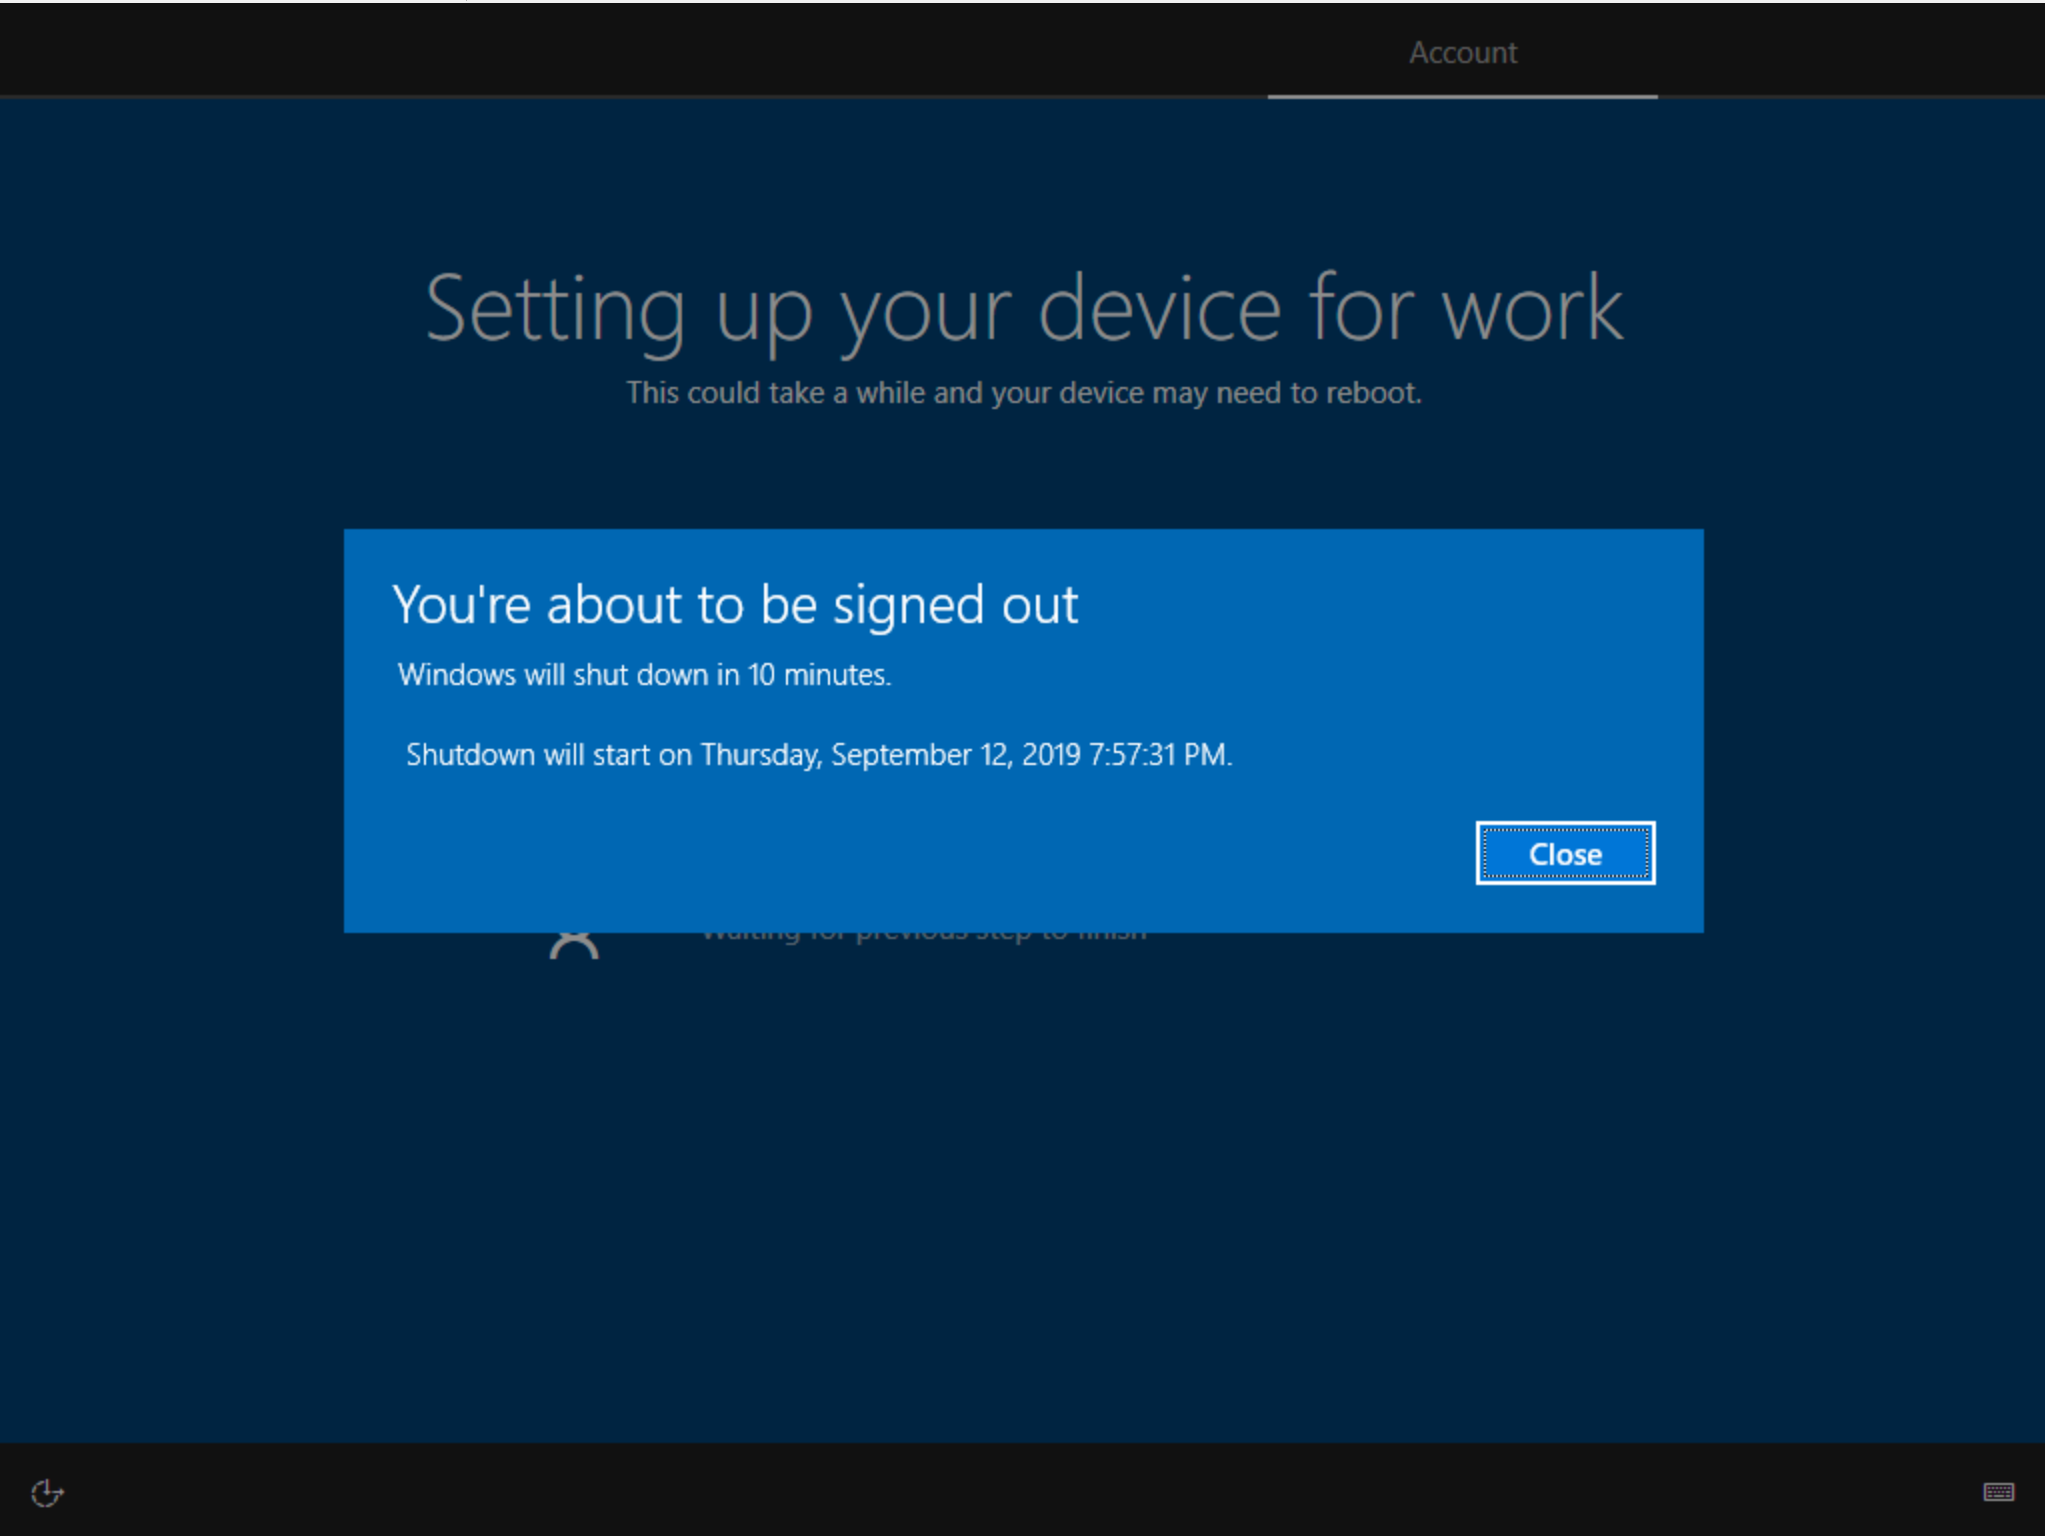 Windows Autopilot: You`re about to be signed out | Peter Klapwijk - In The  cloud 24-7